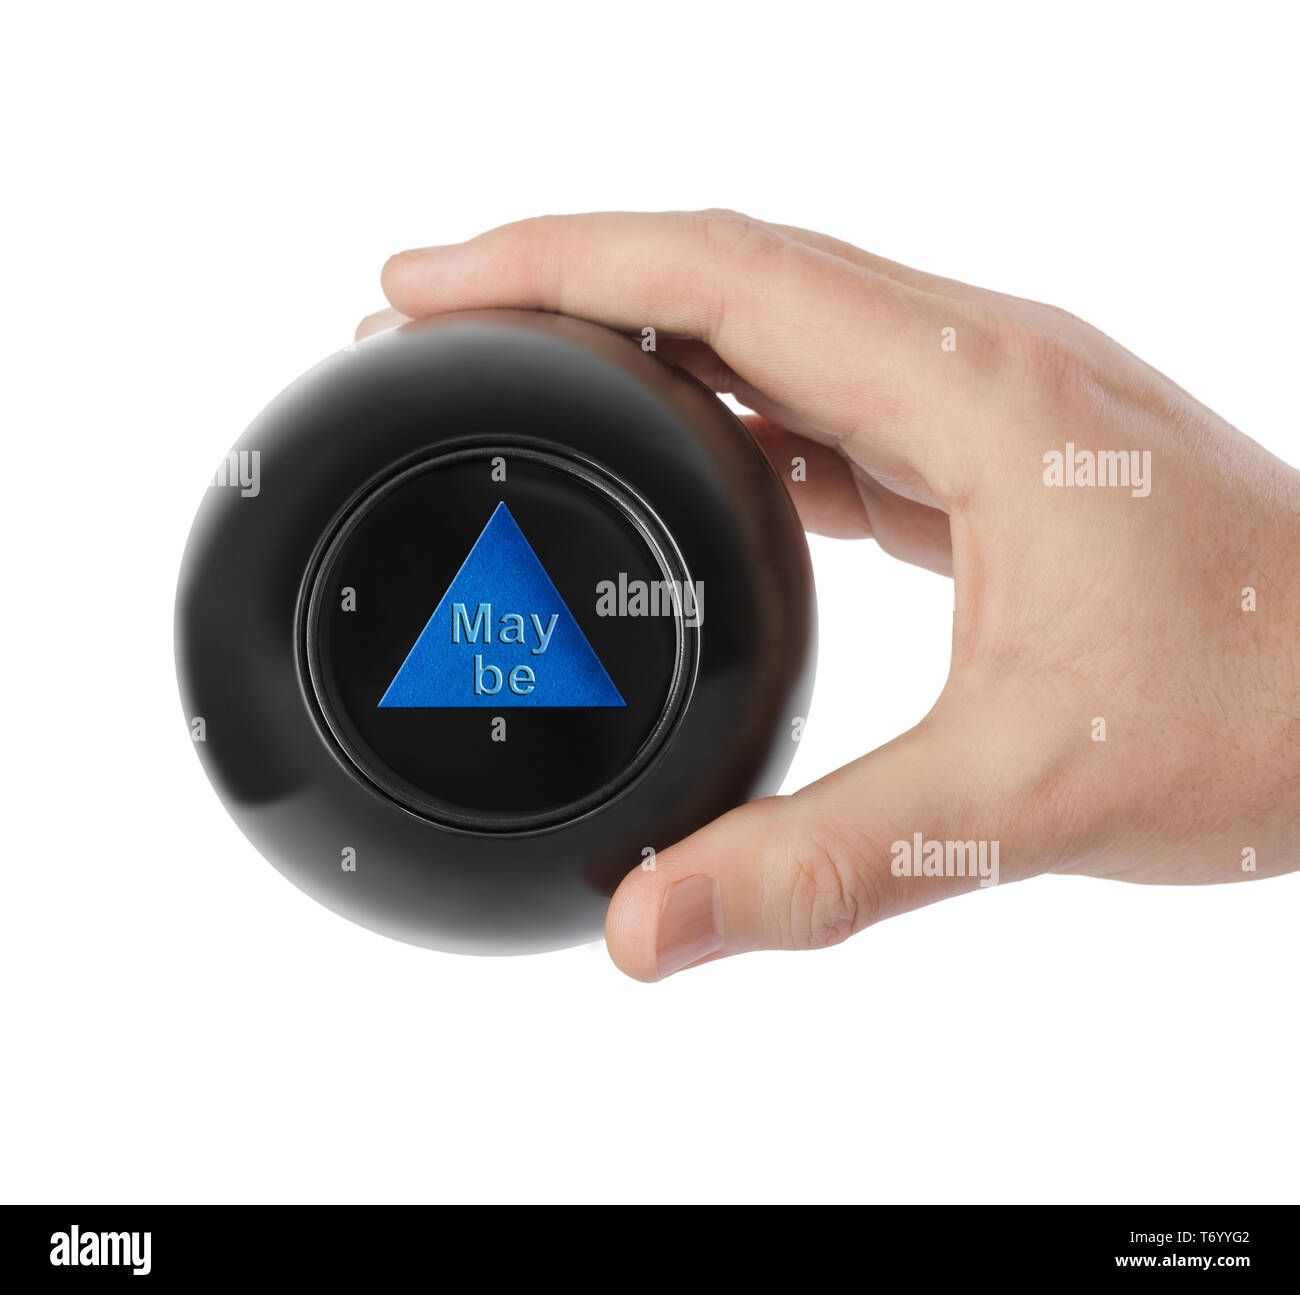 Magic ball with prediction Maybe in hand - Stock Image